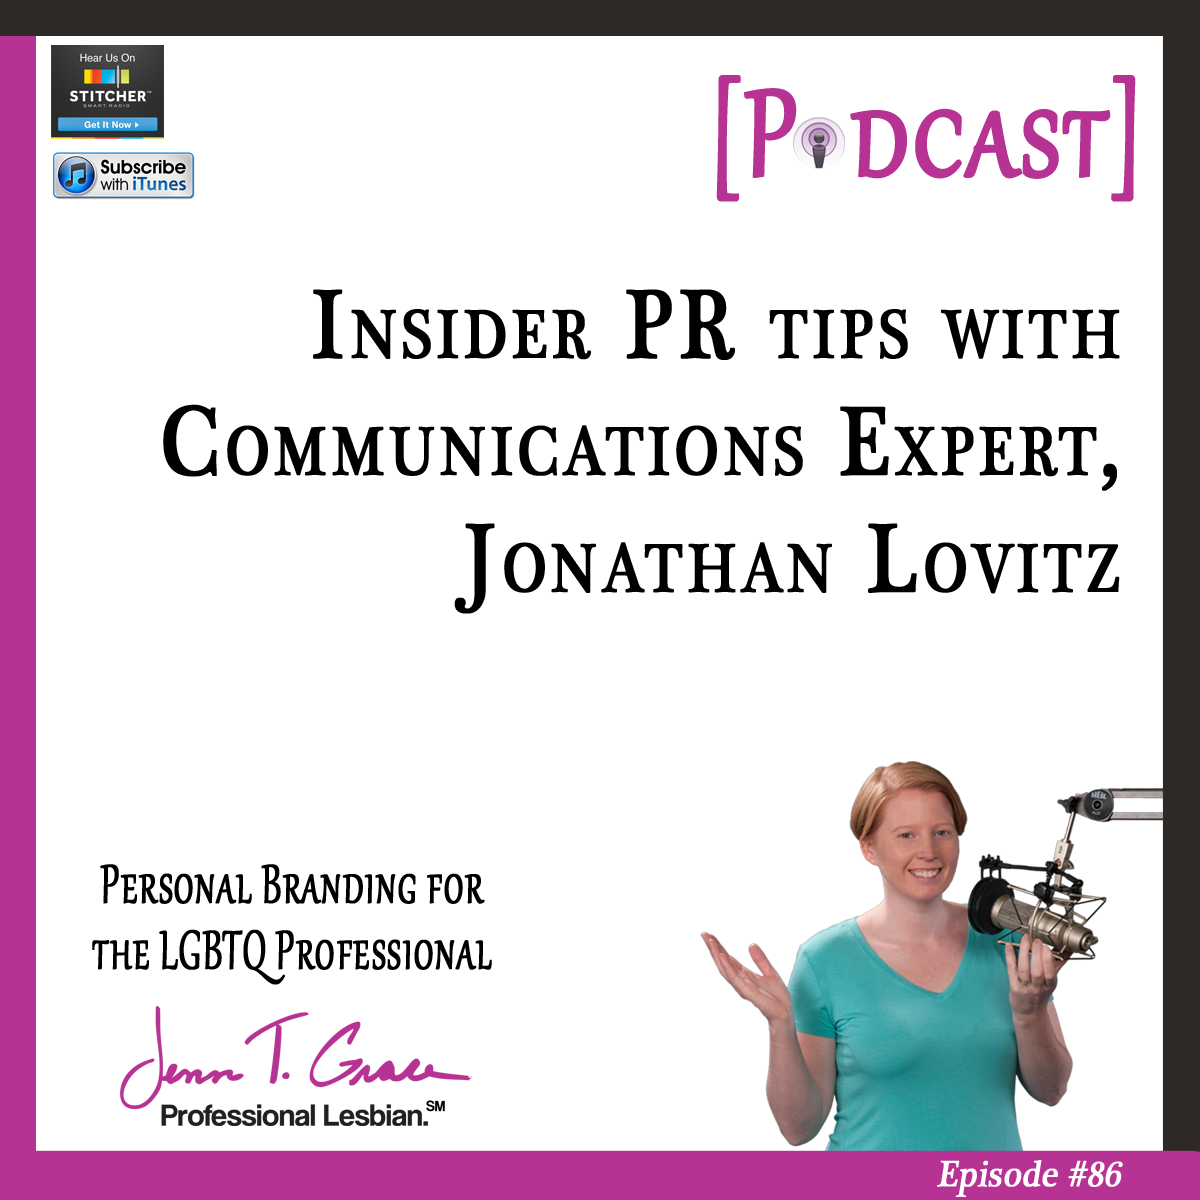 Personal Branding for the LGBTQ Professional - #86: Insider PR Tips with Communications Expert, Jonathan Lovitz [Podcast]